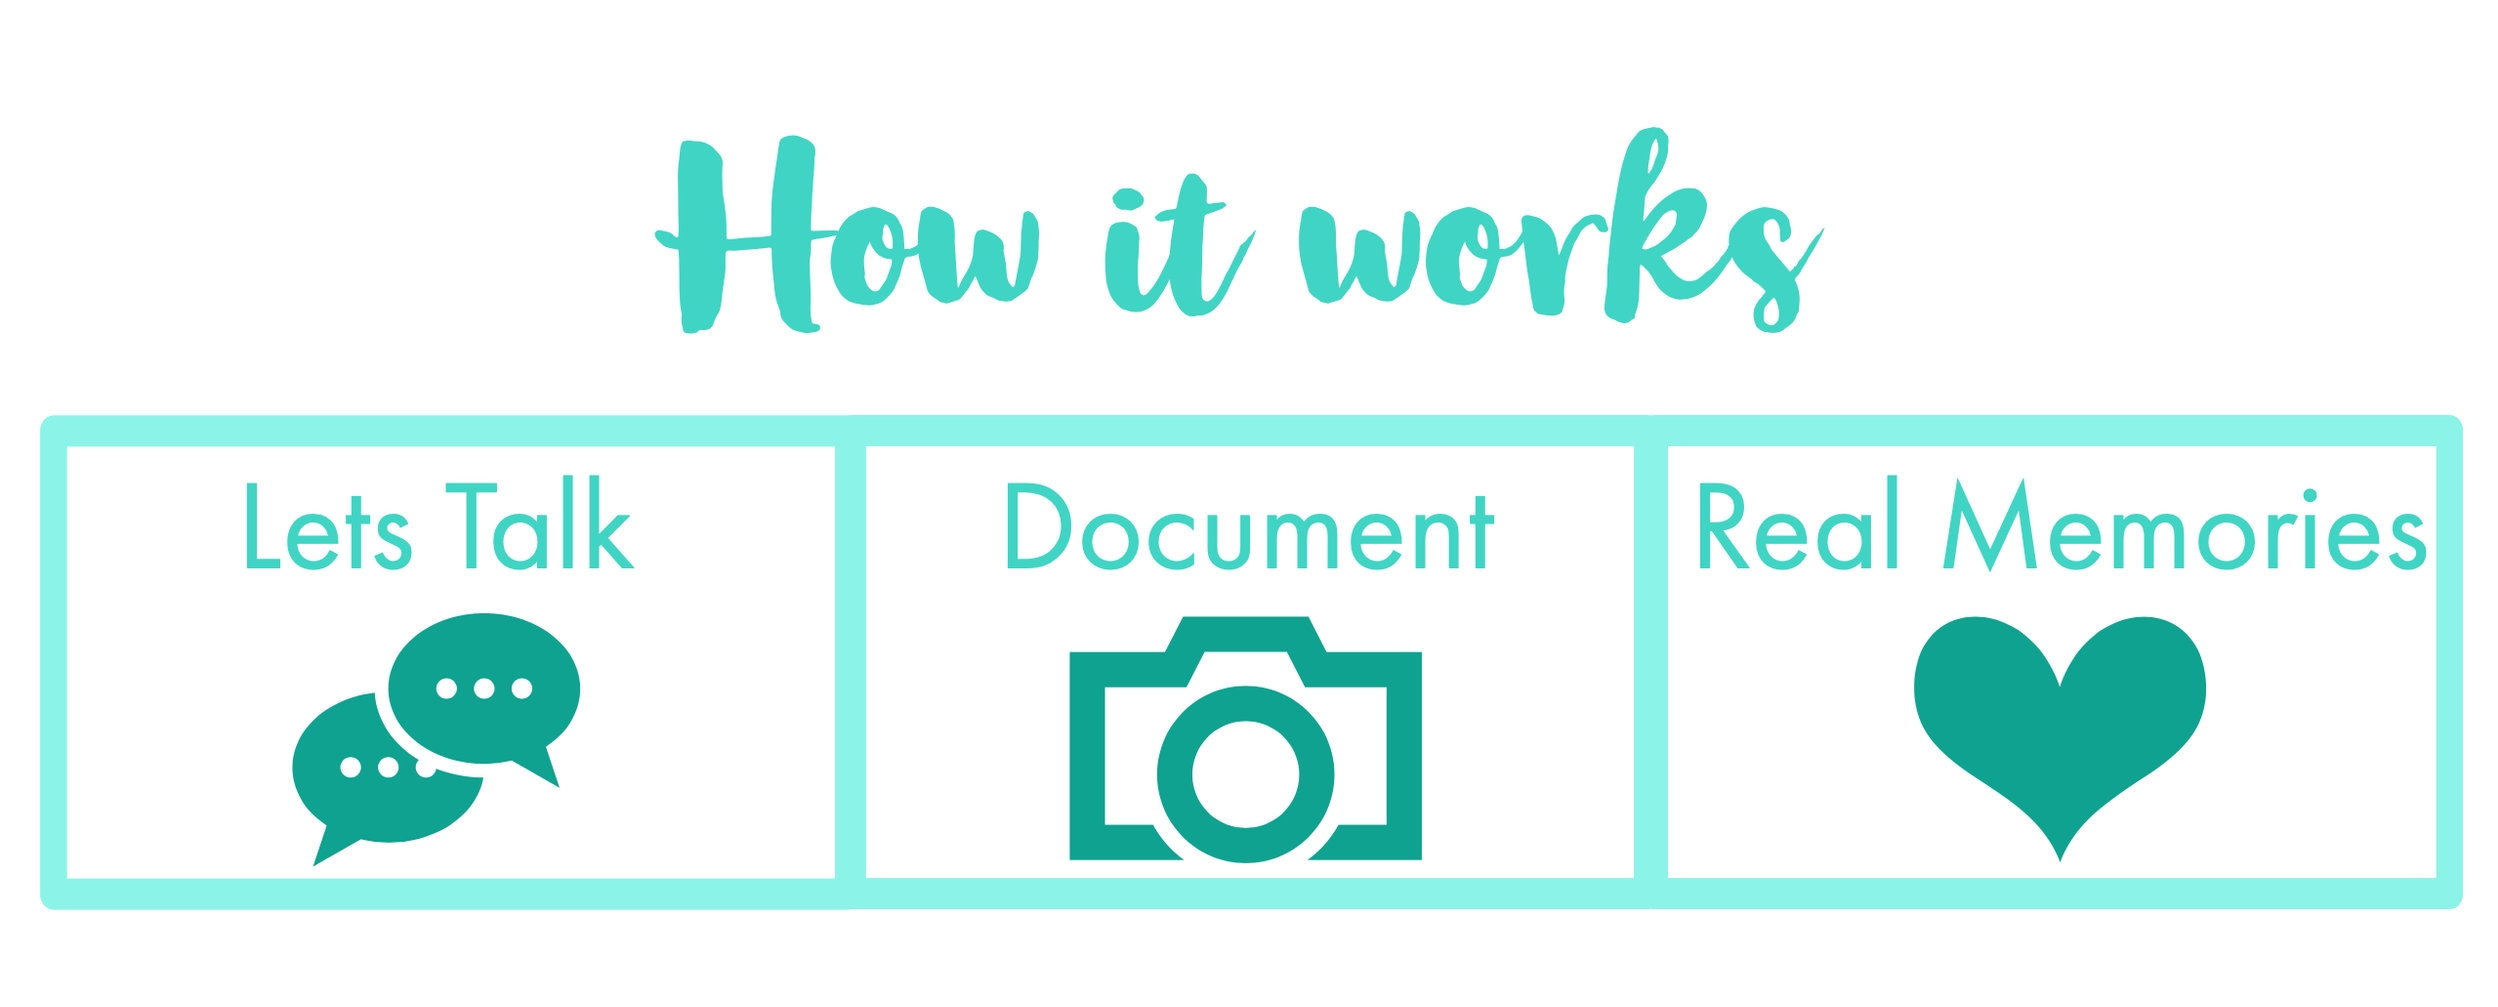 How it works - 3 step process to working with Daryl Porter Photography. 1) Lets Talk, 2) Document, 3) Real Memories